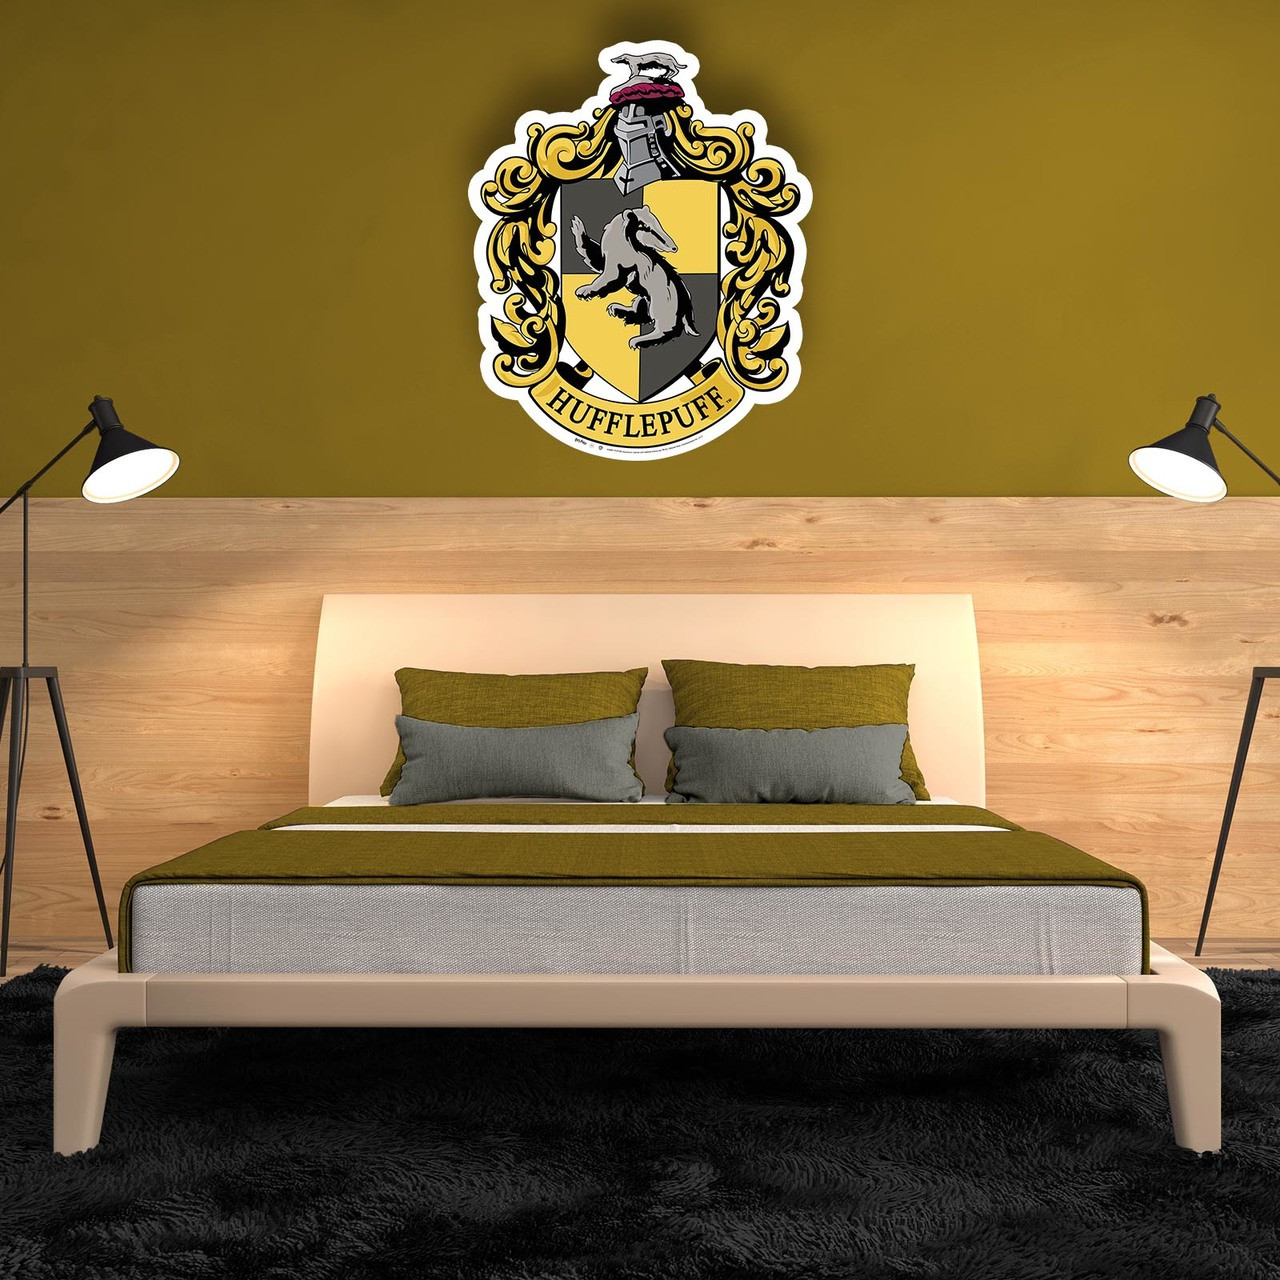 Hufflepuff Crest from Harry Potter Wall Mounted Official Cardboard ...